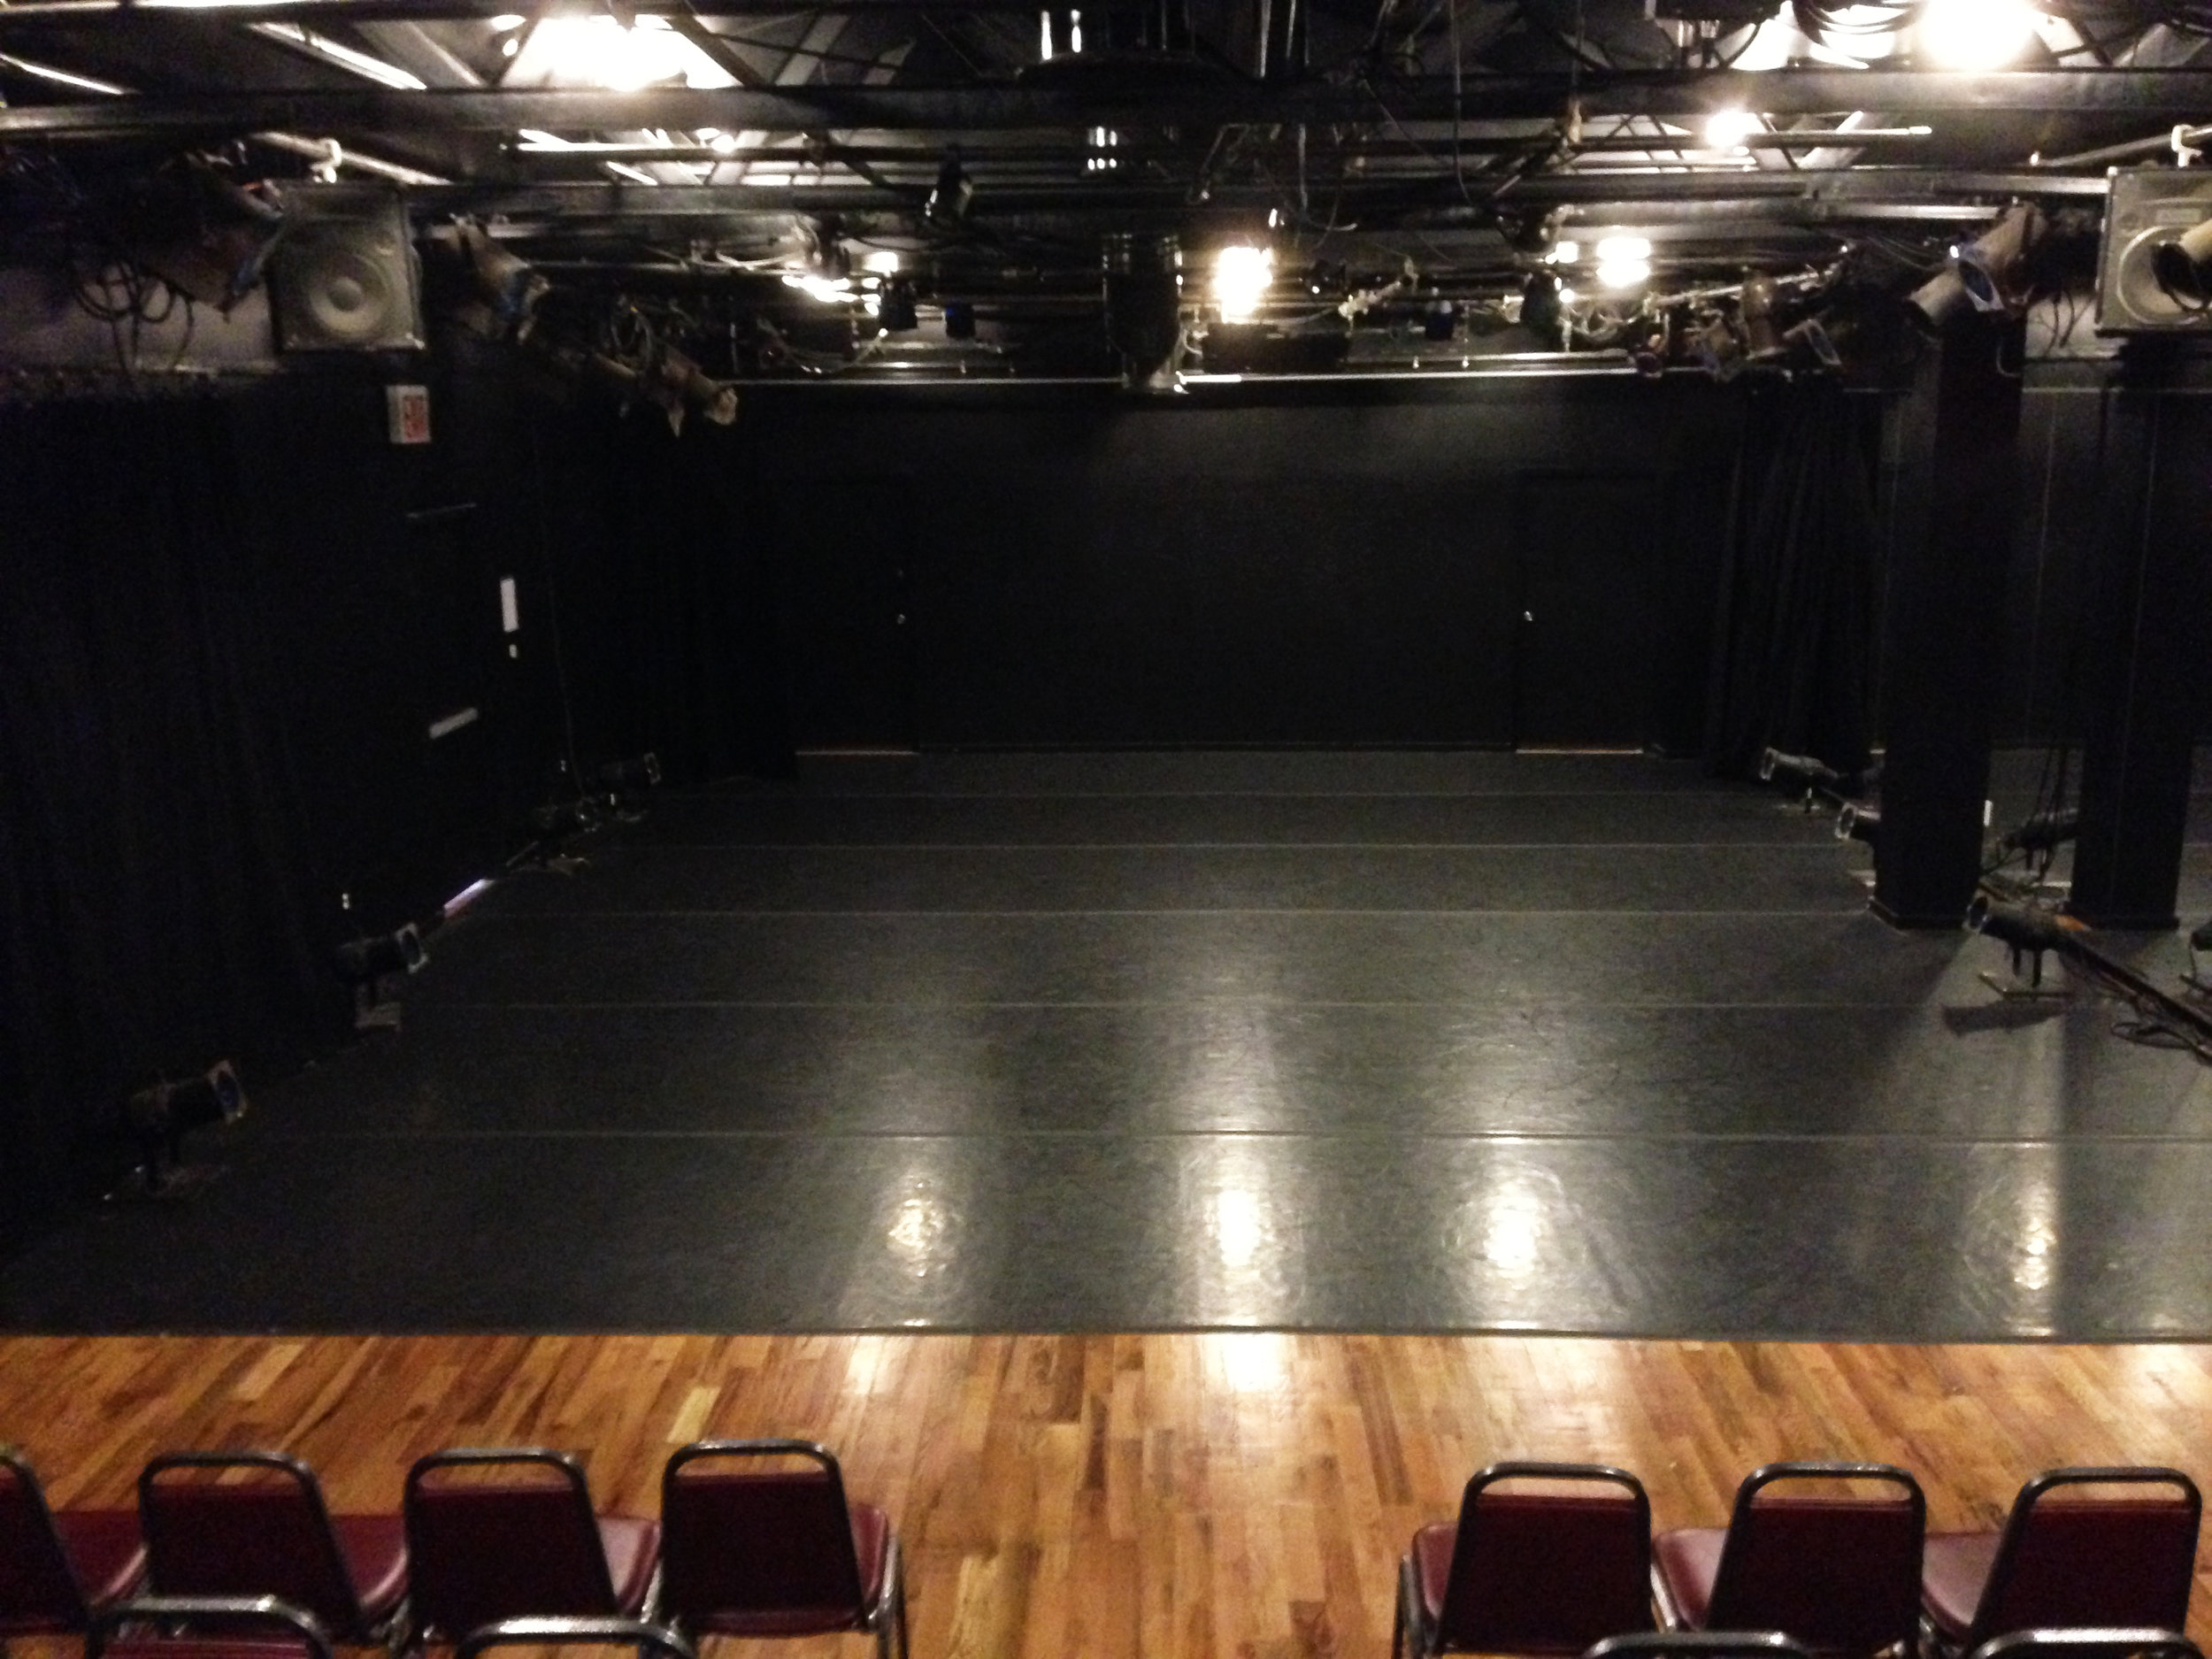 Stage Space:28' wide x 43' long